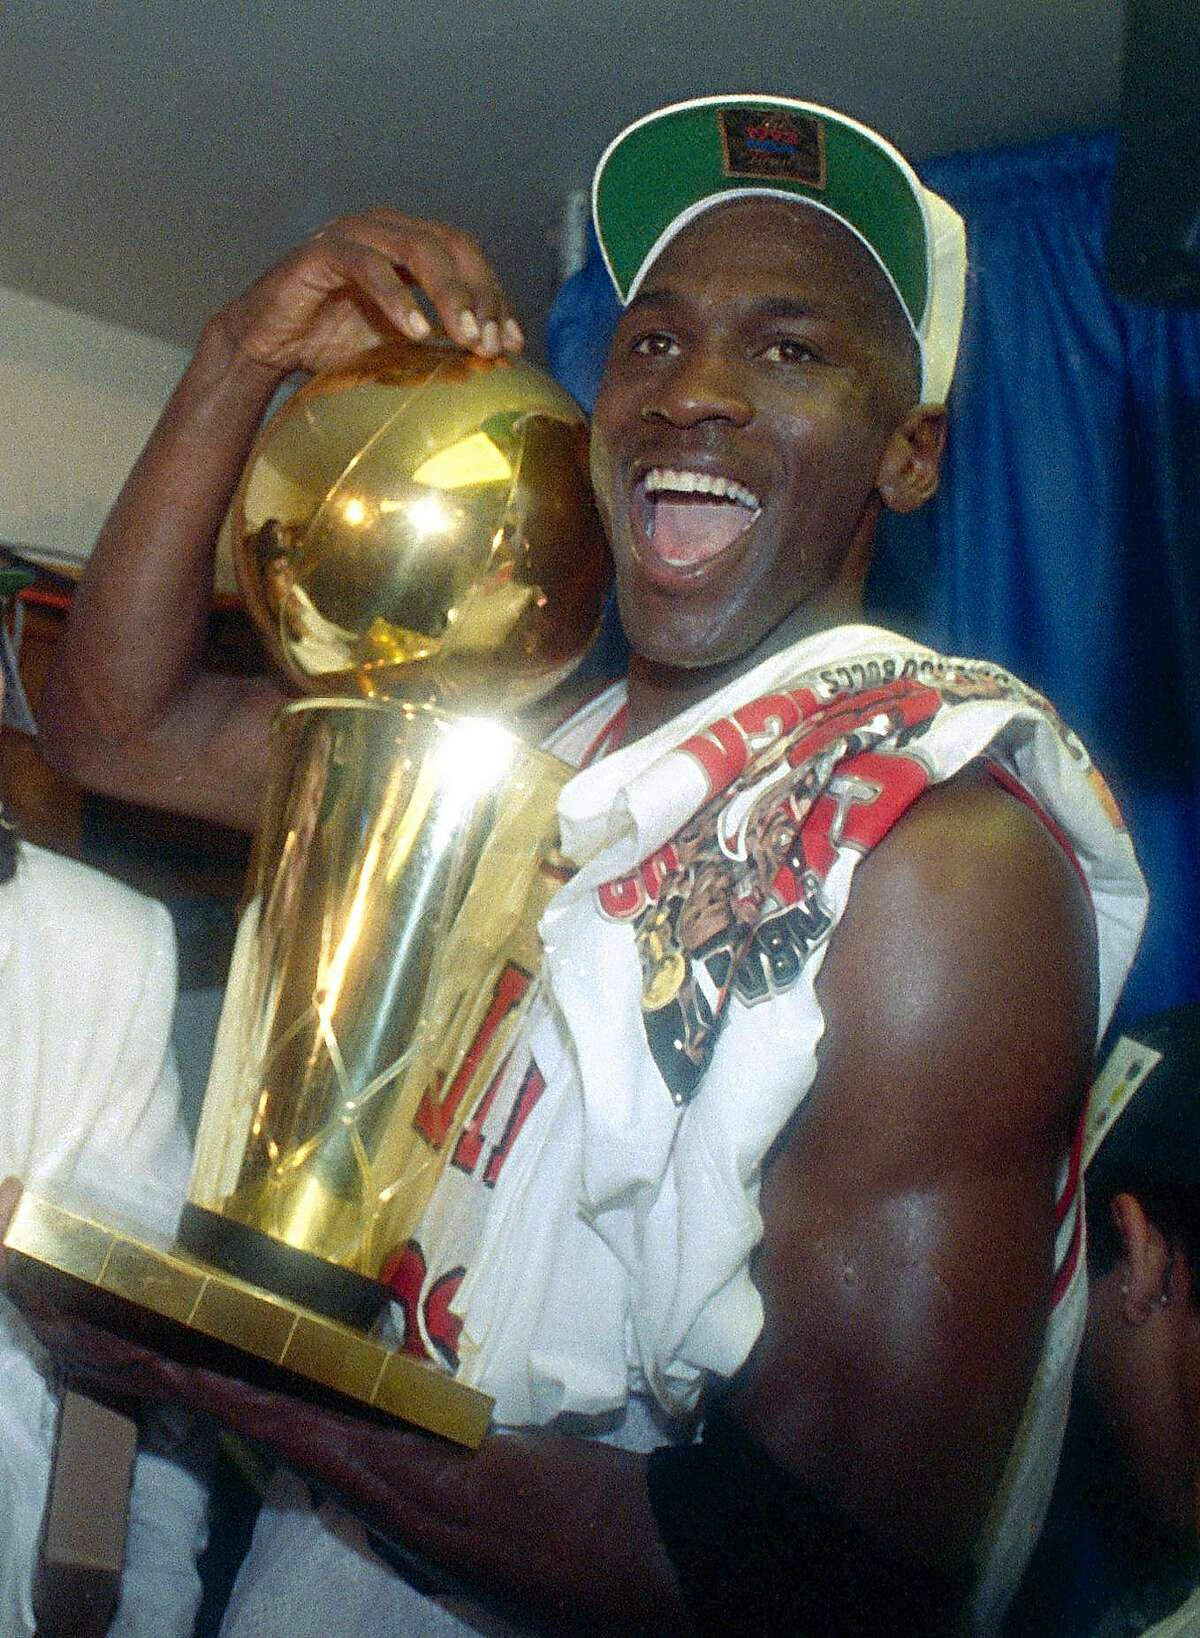 This is a june 14, 1992 file photo showing Chicago Bulls' Michael Jordan celebrating with the NBA trophy after the Bulls beat the Portland Trail Blazers 97-93 in Chicago, to win their second straight NBA title. On Friday, Sept. 11, 2009, Jordan will be enshrined at the Basketball Hall of Fame. (AP Photo/Mark Duncan, File)